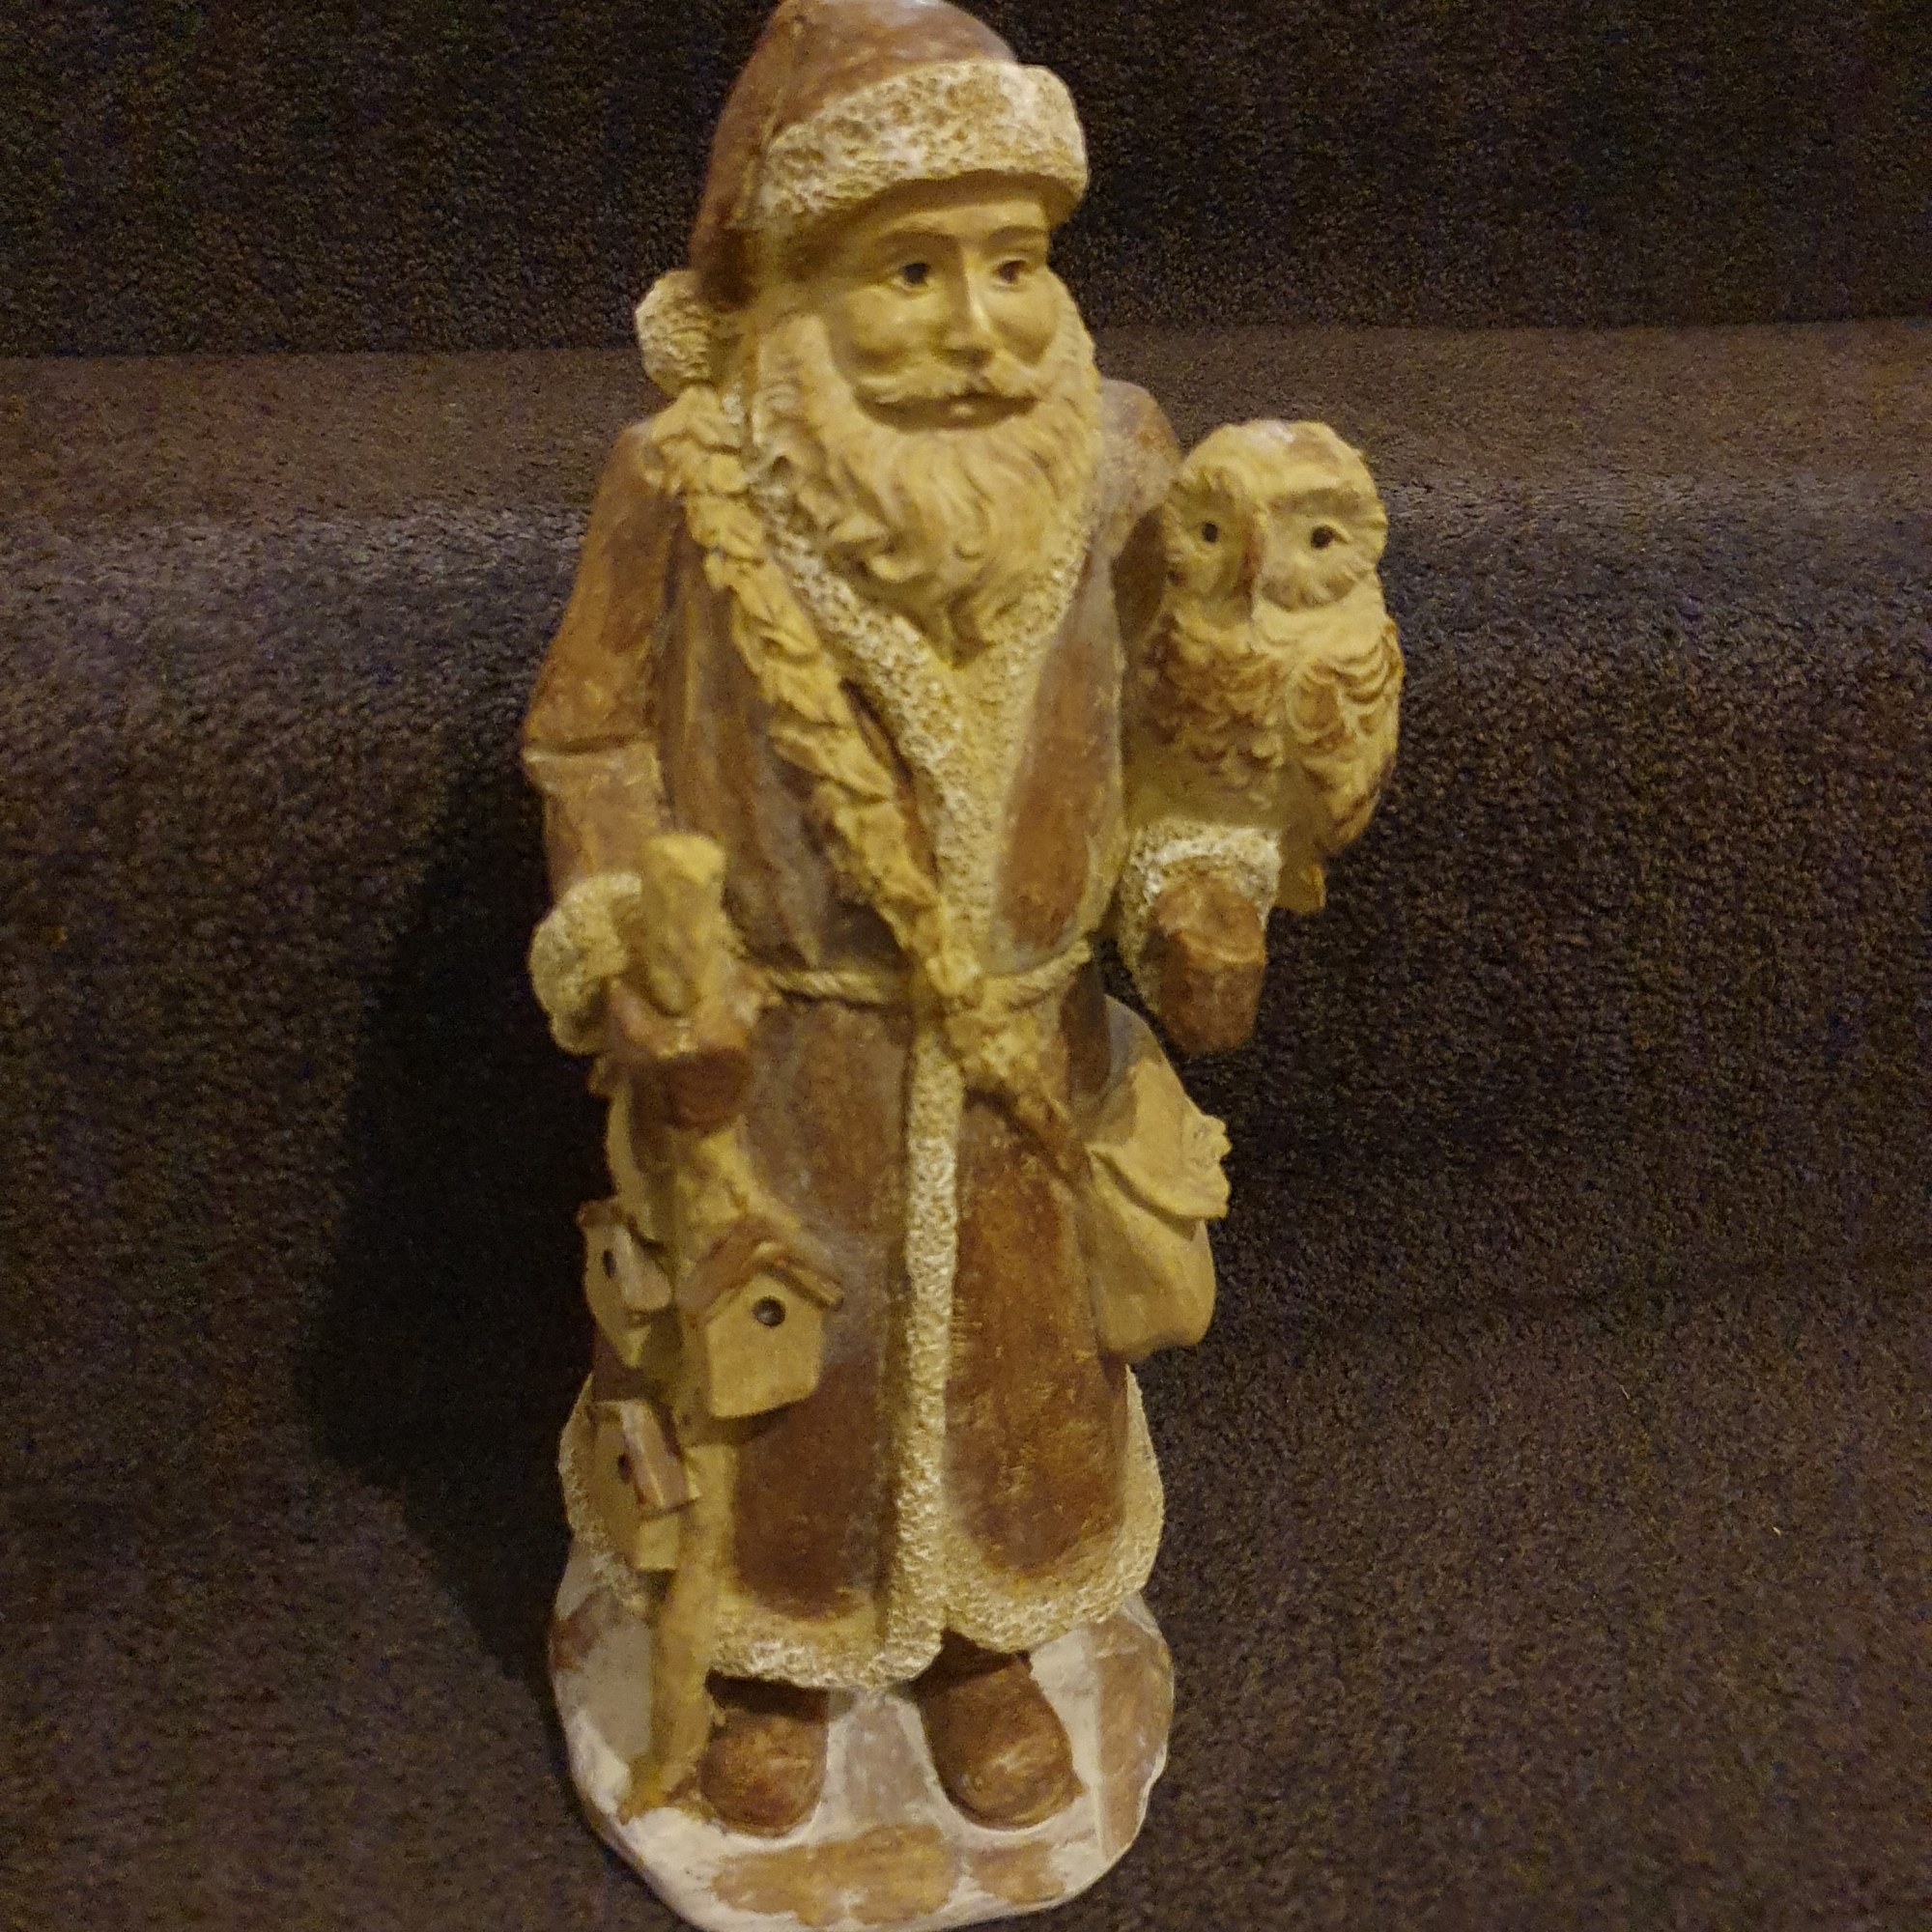 Wooden rustic Santa holding an owl